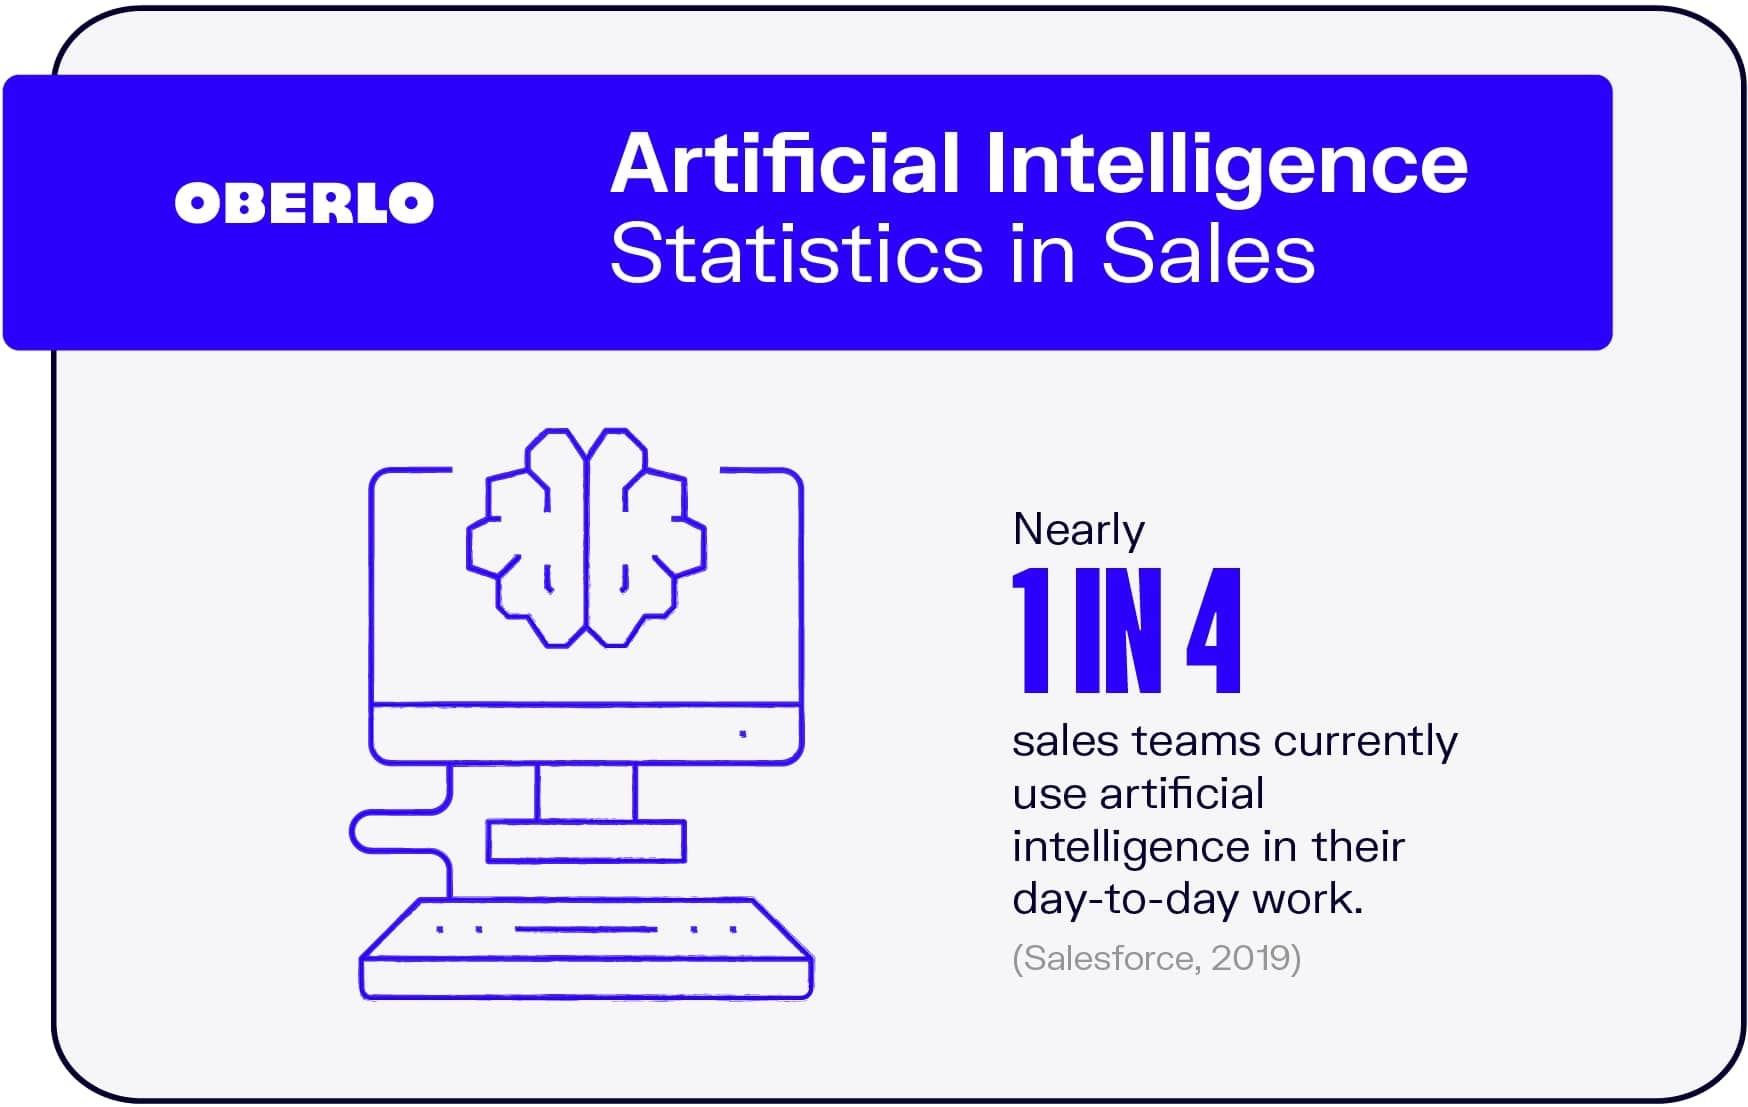 Artificial Intelligence Statistics in Sales